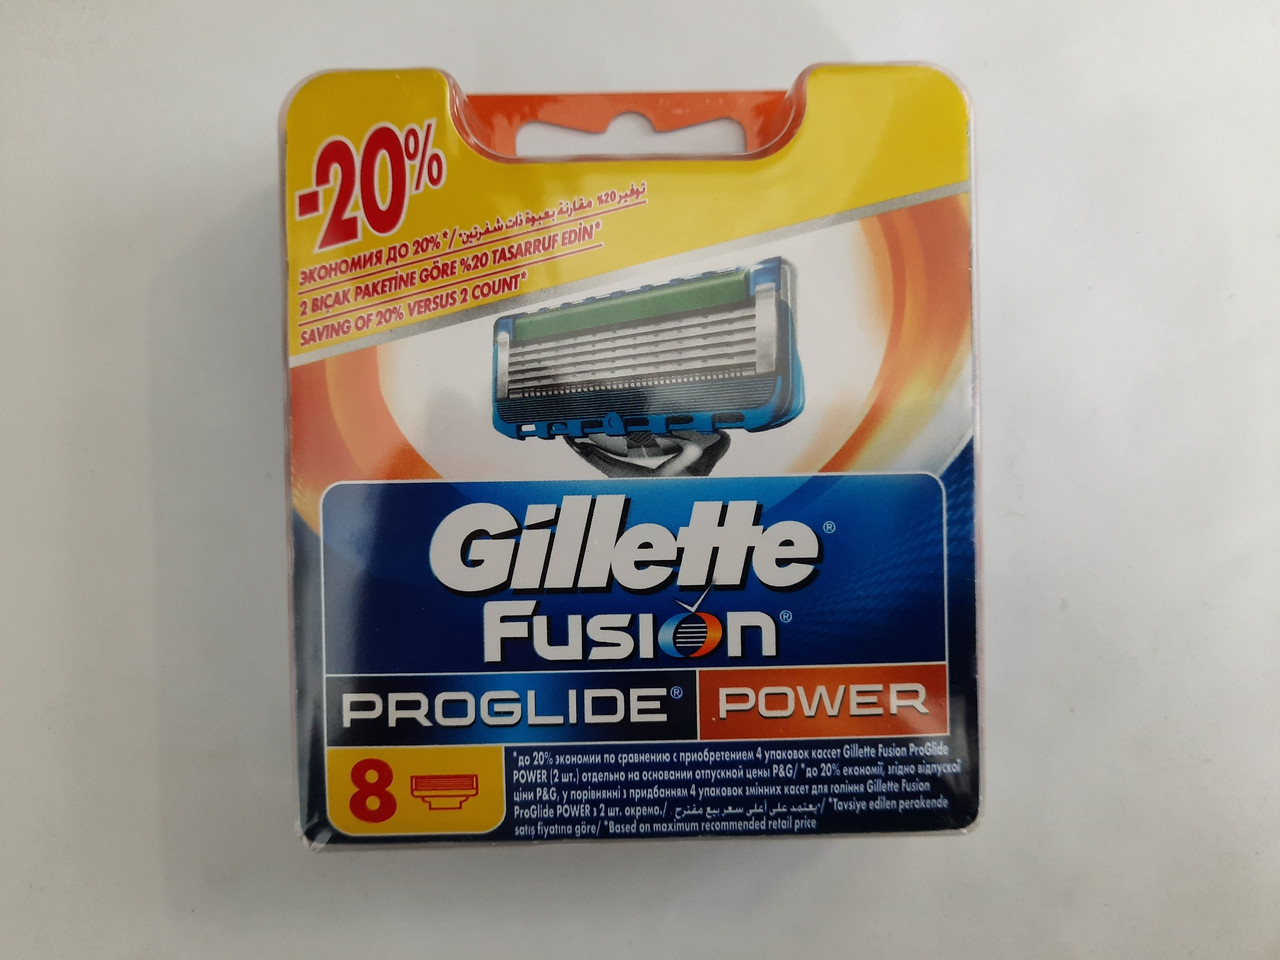 Кассеты для бритья Gillette Fusion Proglide Power  8 шт. ( Картриджи Фюжин проглейд повер оригинал )